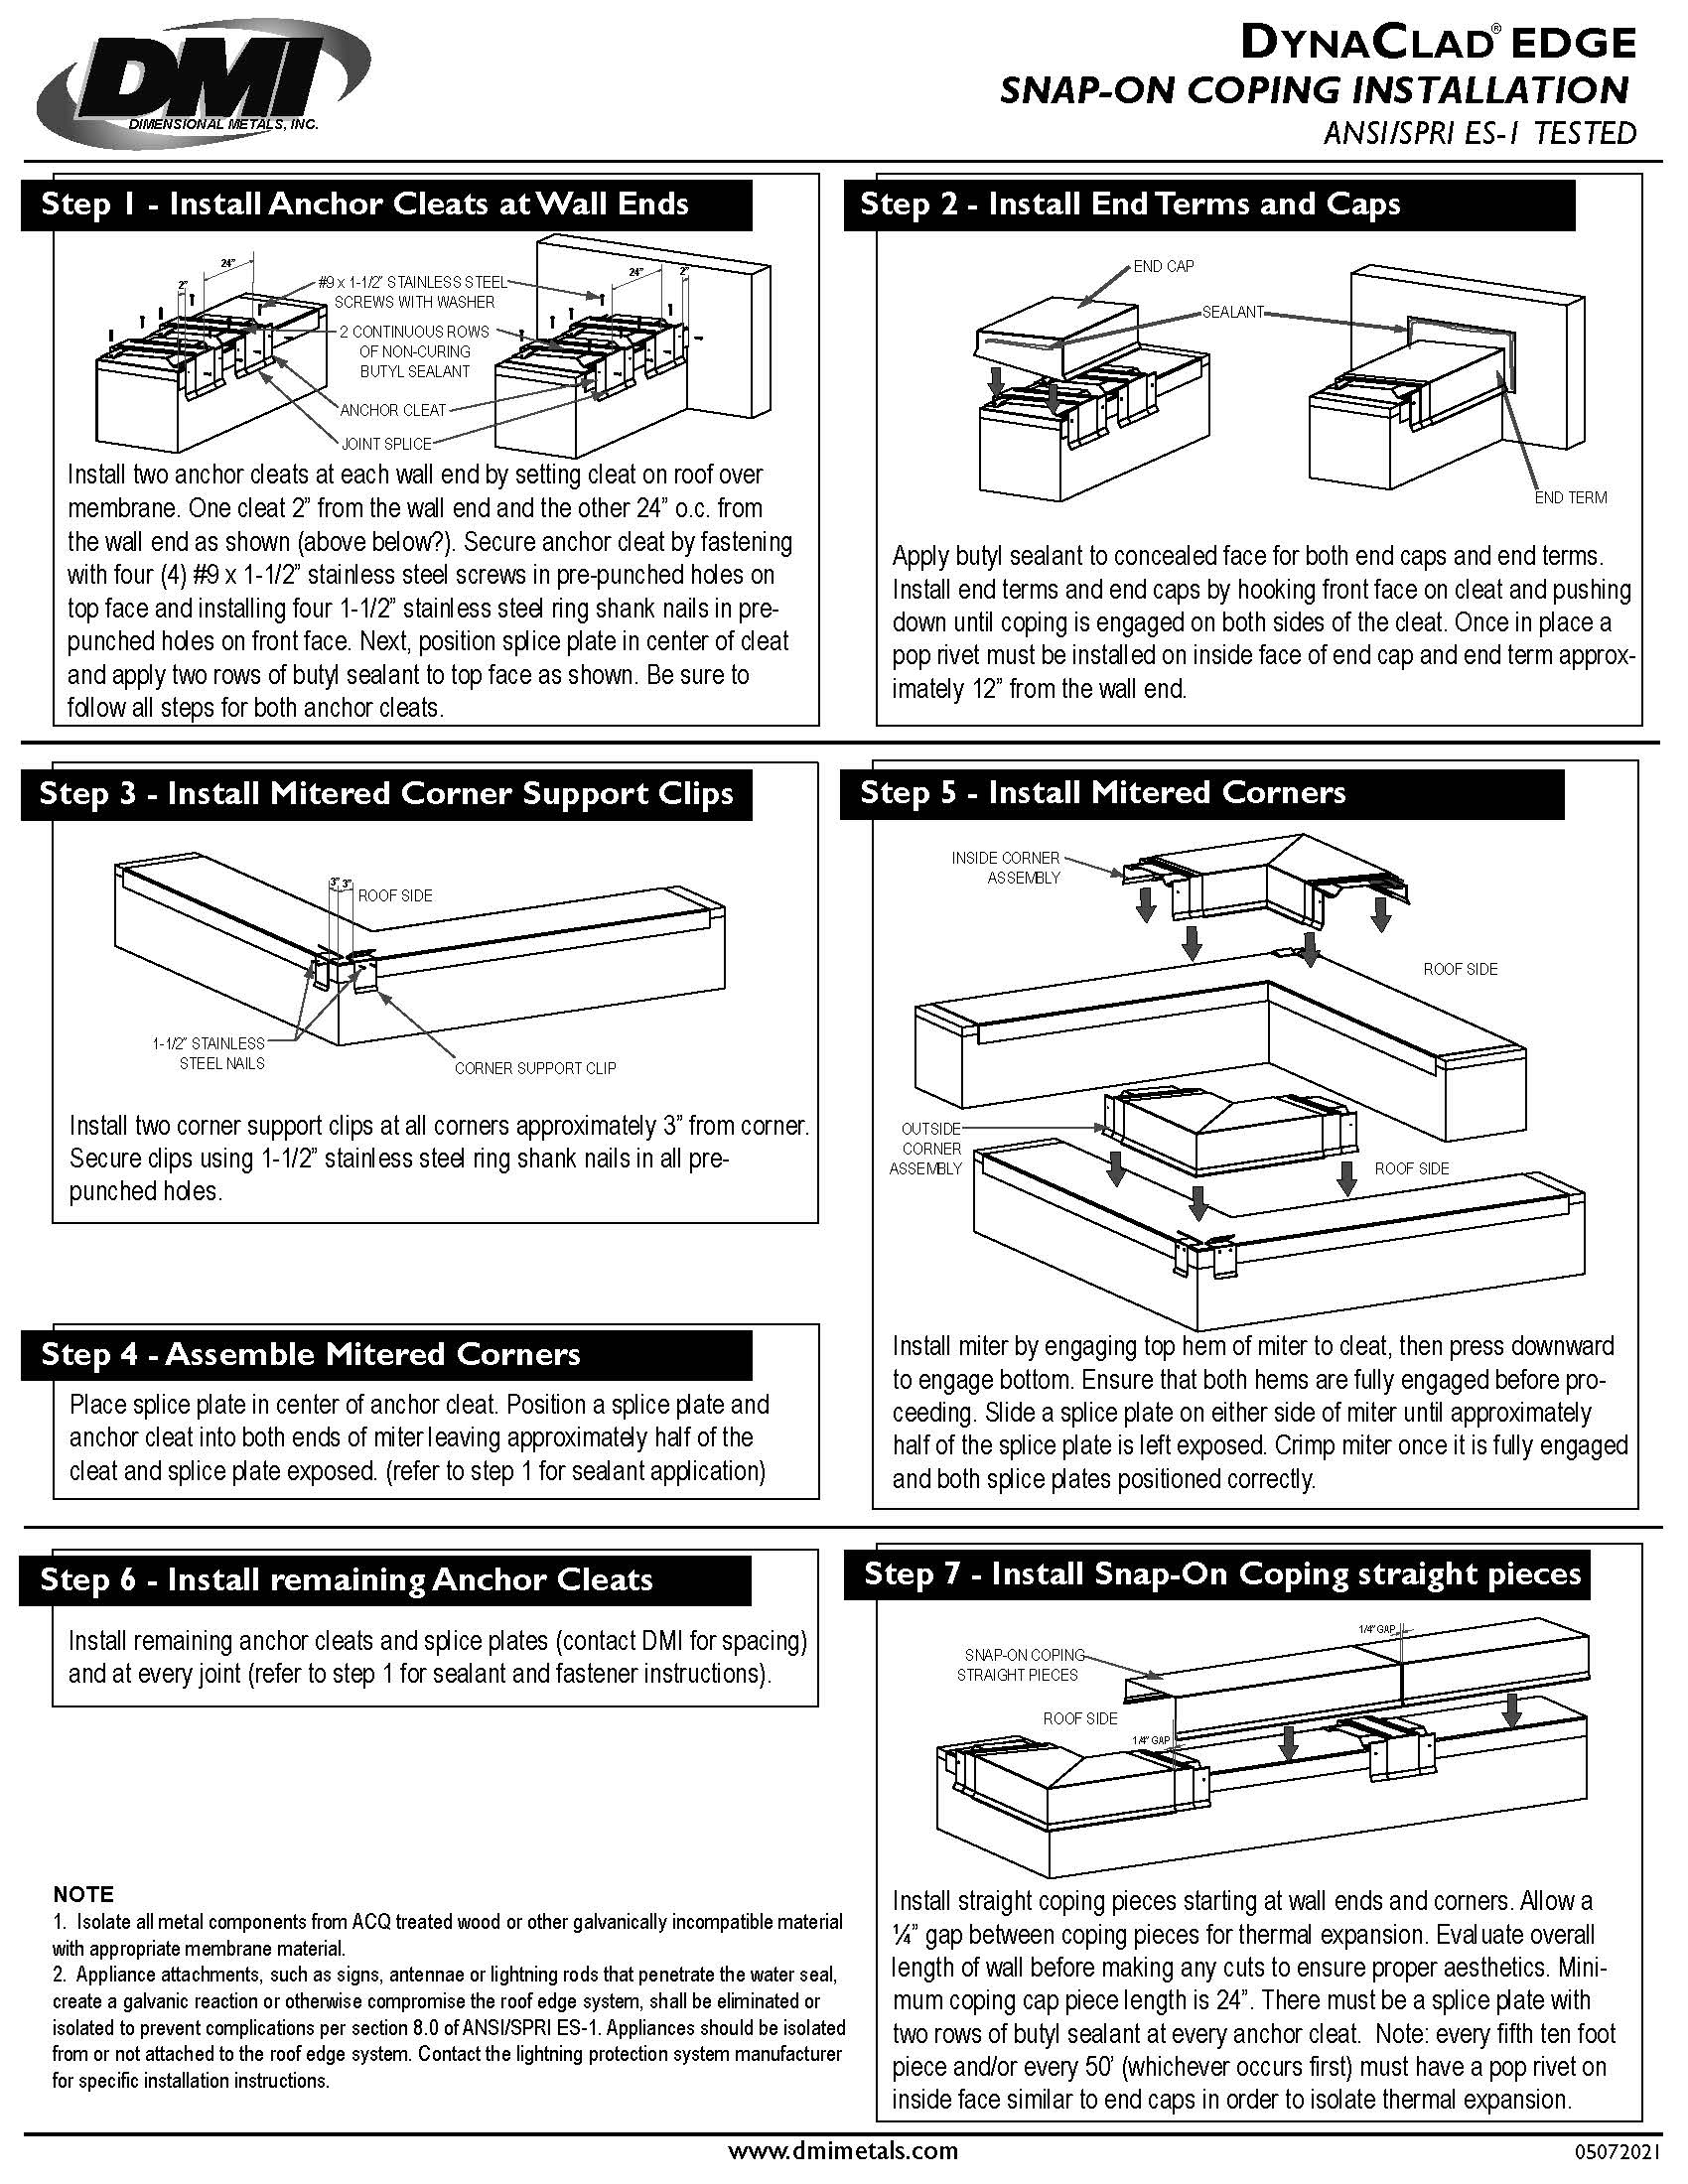 snap-on-coping-installation-guide